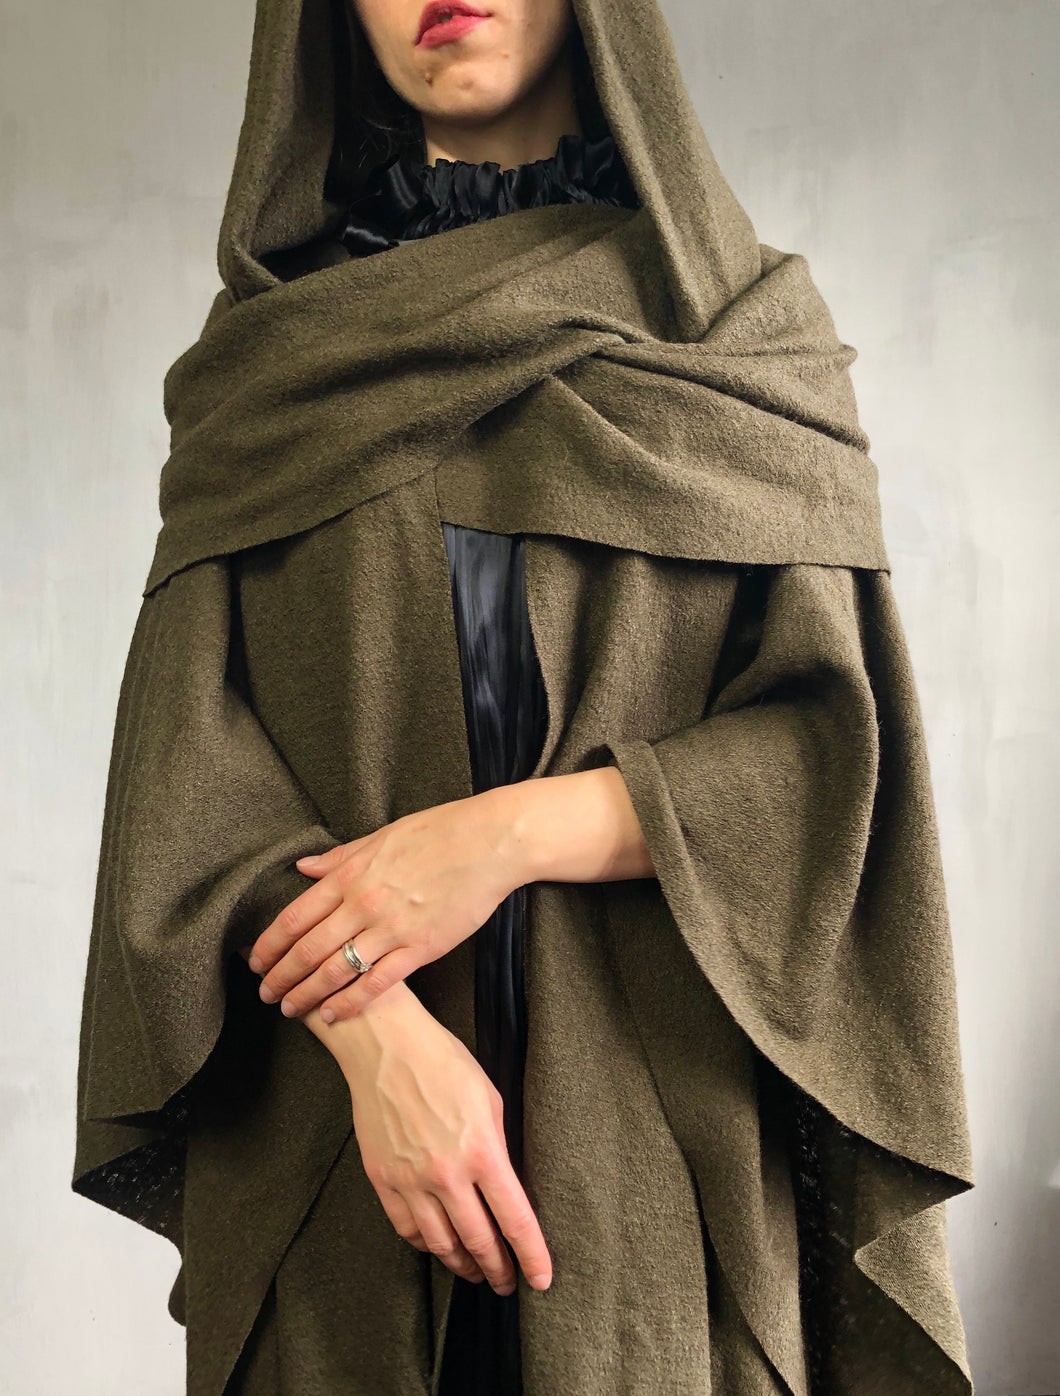 Archive 2021: Mythic Cape in Oakmoss Boiled Wool (Limited Edition)